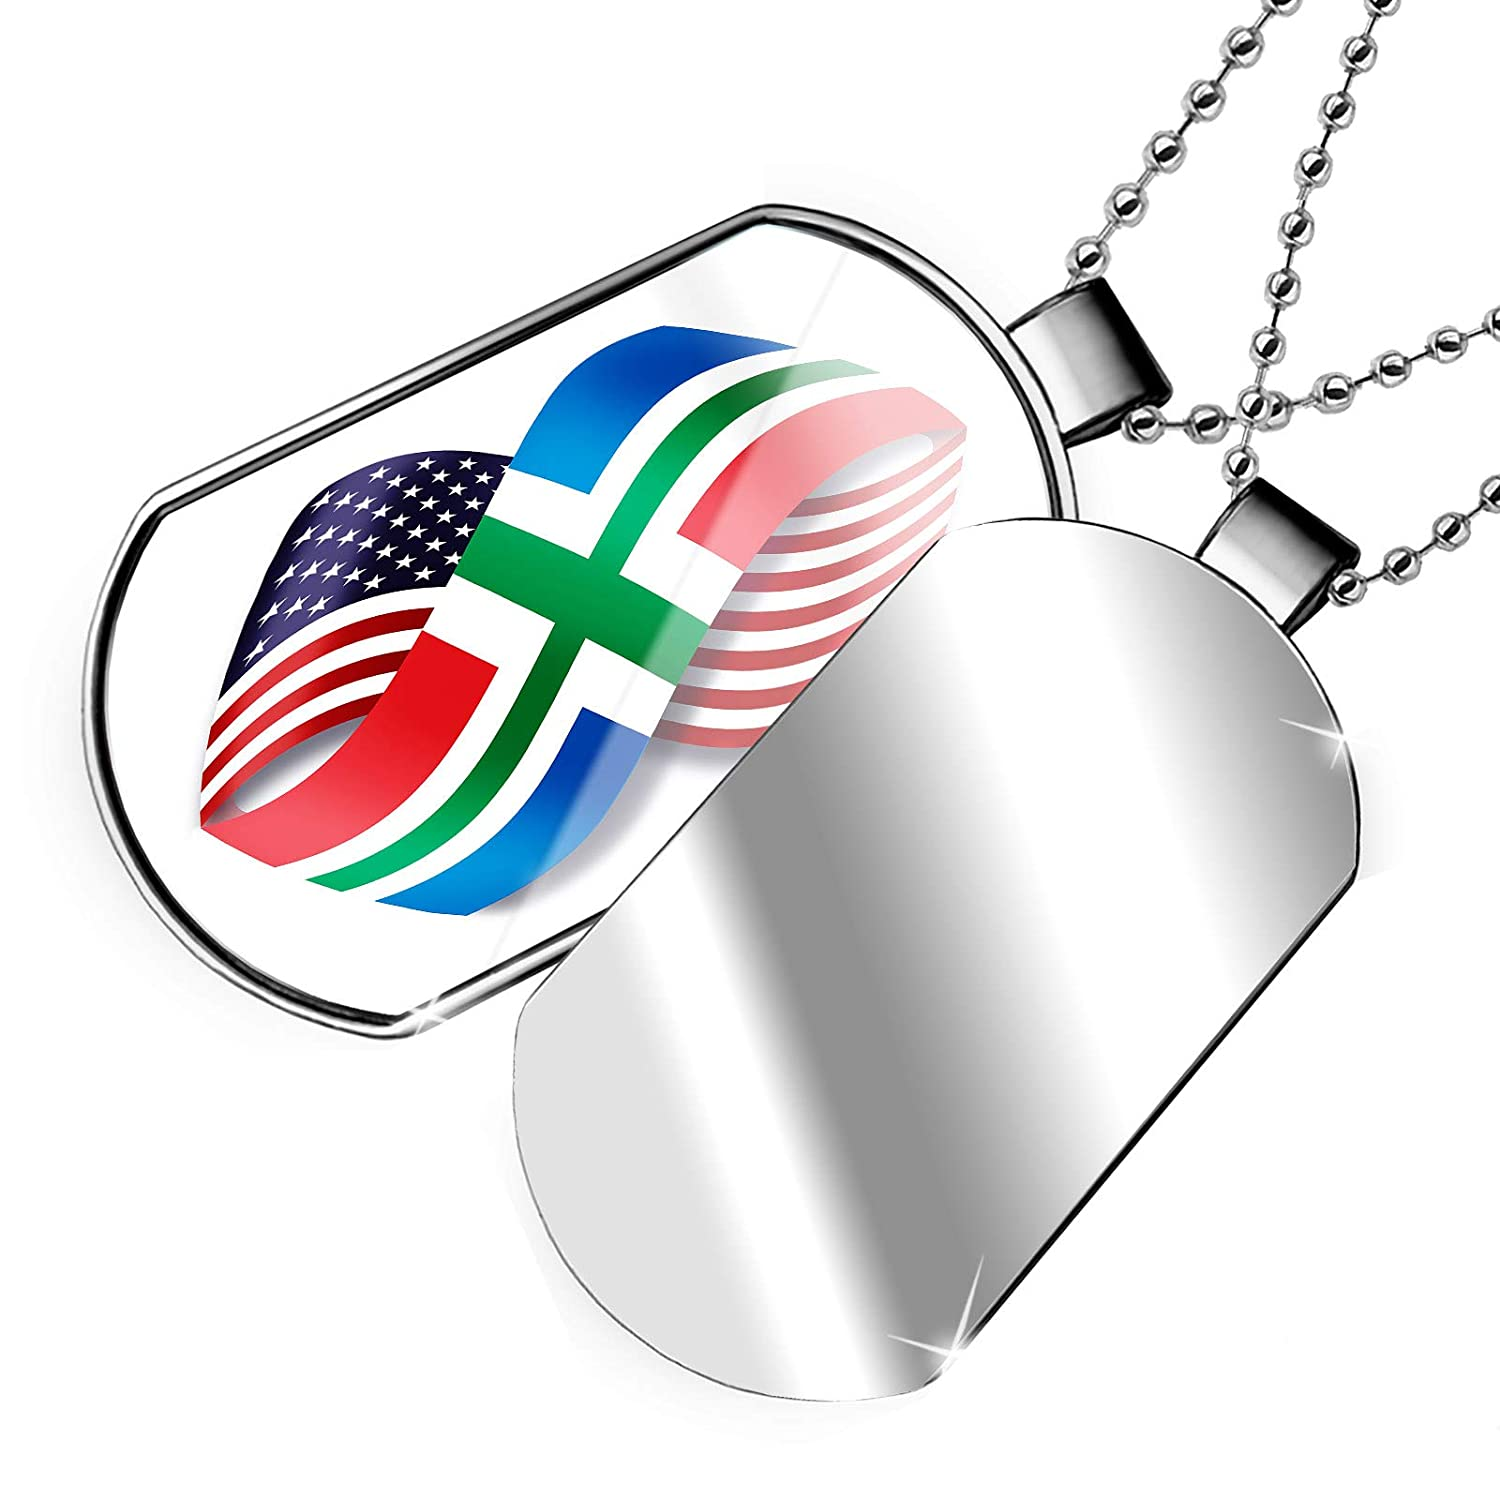 NEONBLOND Personalized Name Engraved Infinity Flags USA and Groningen Region Netherlands Dogtag Necklace